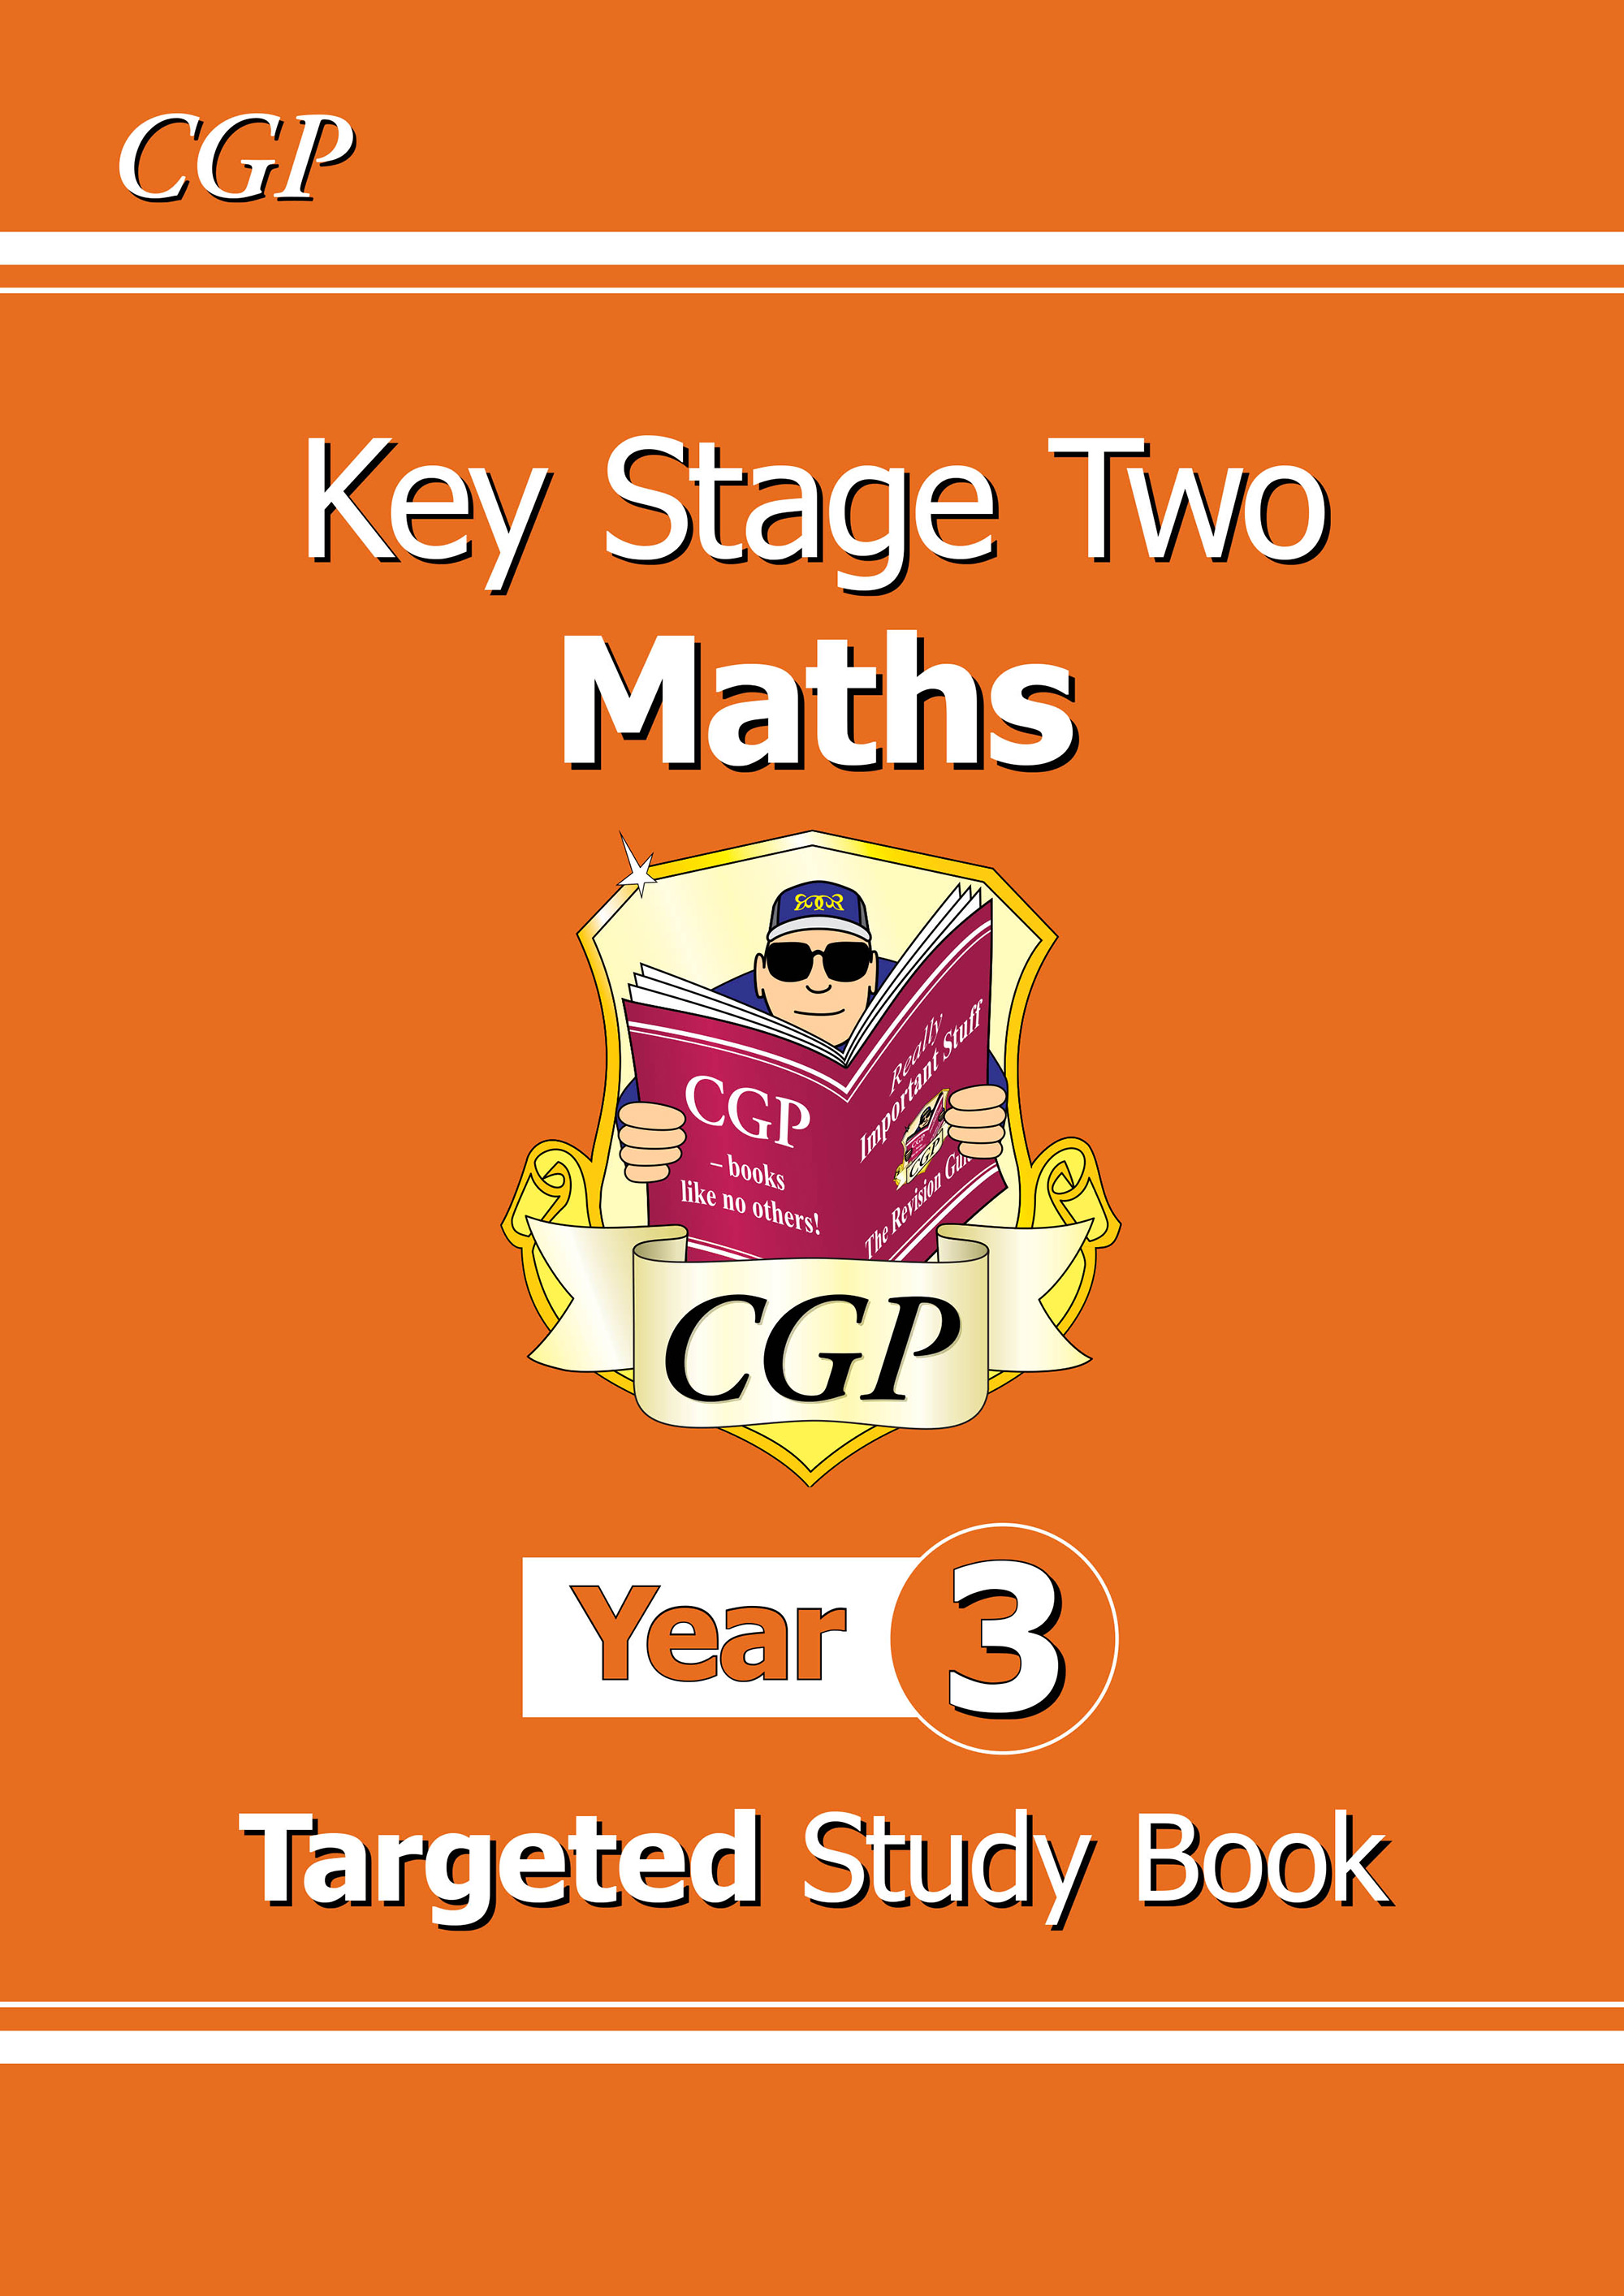 M3R23DK - KS2 Maths Targeted Study Book - Year 3